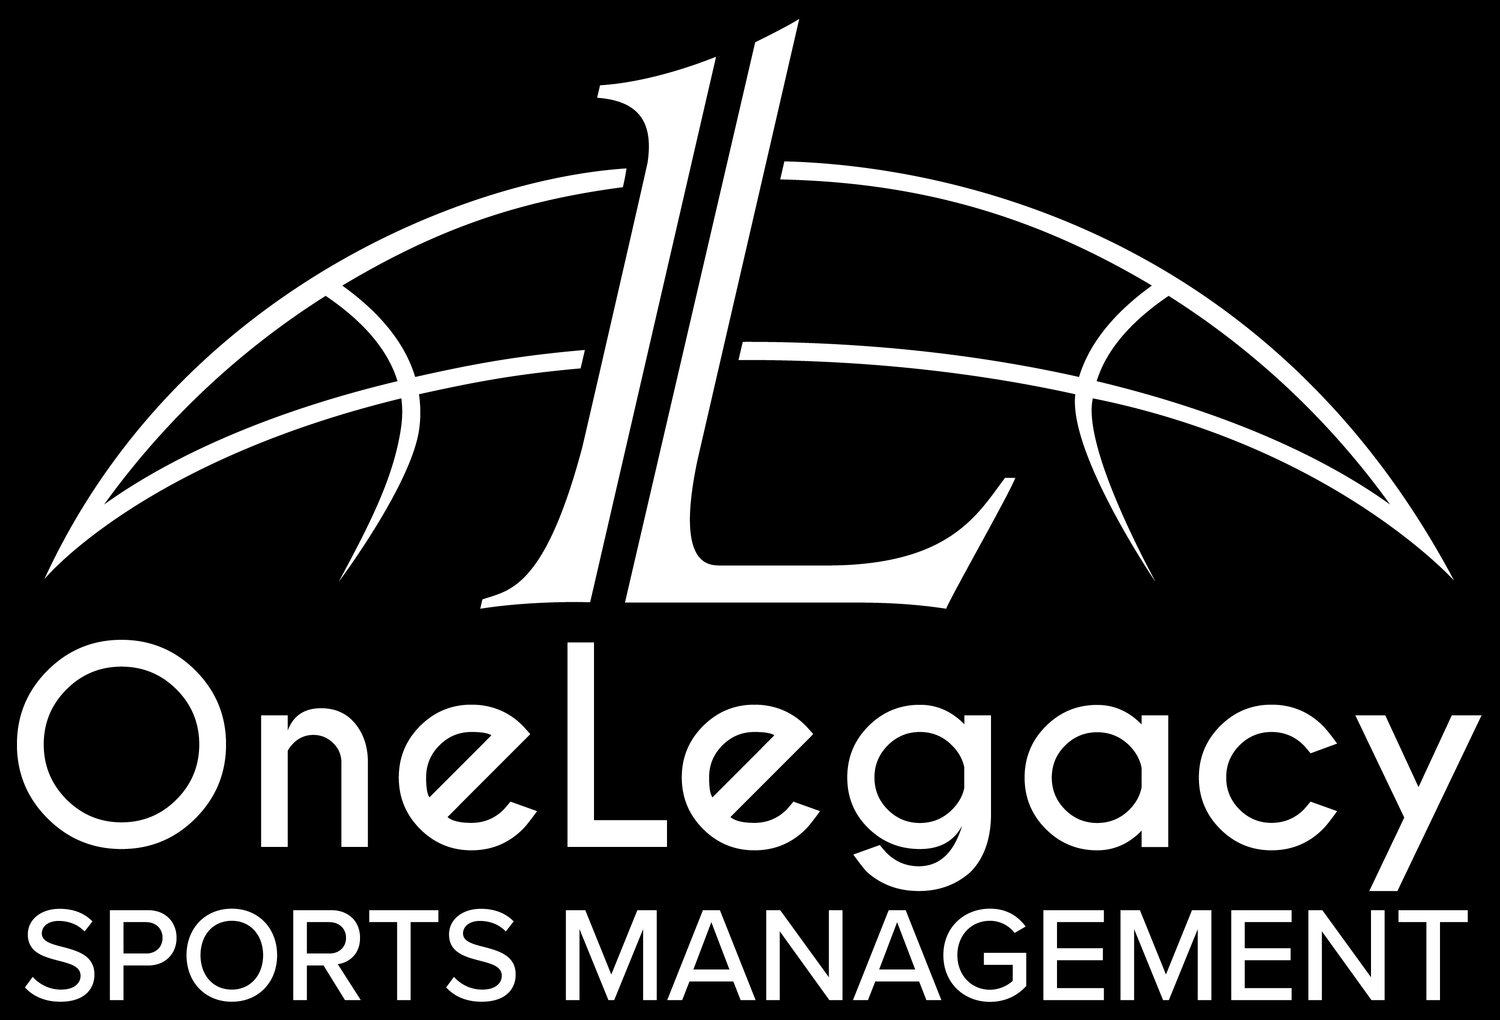 One Legacy Sports Management